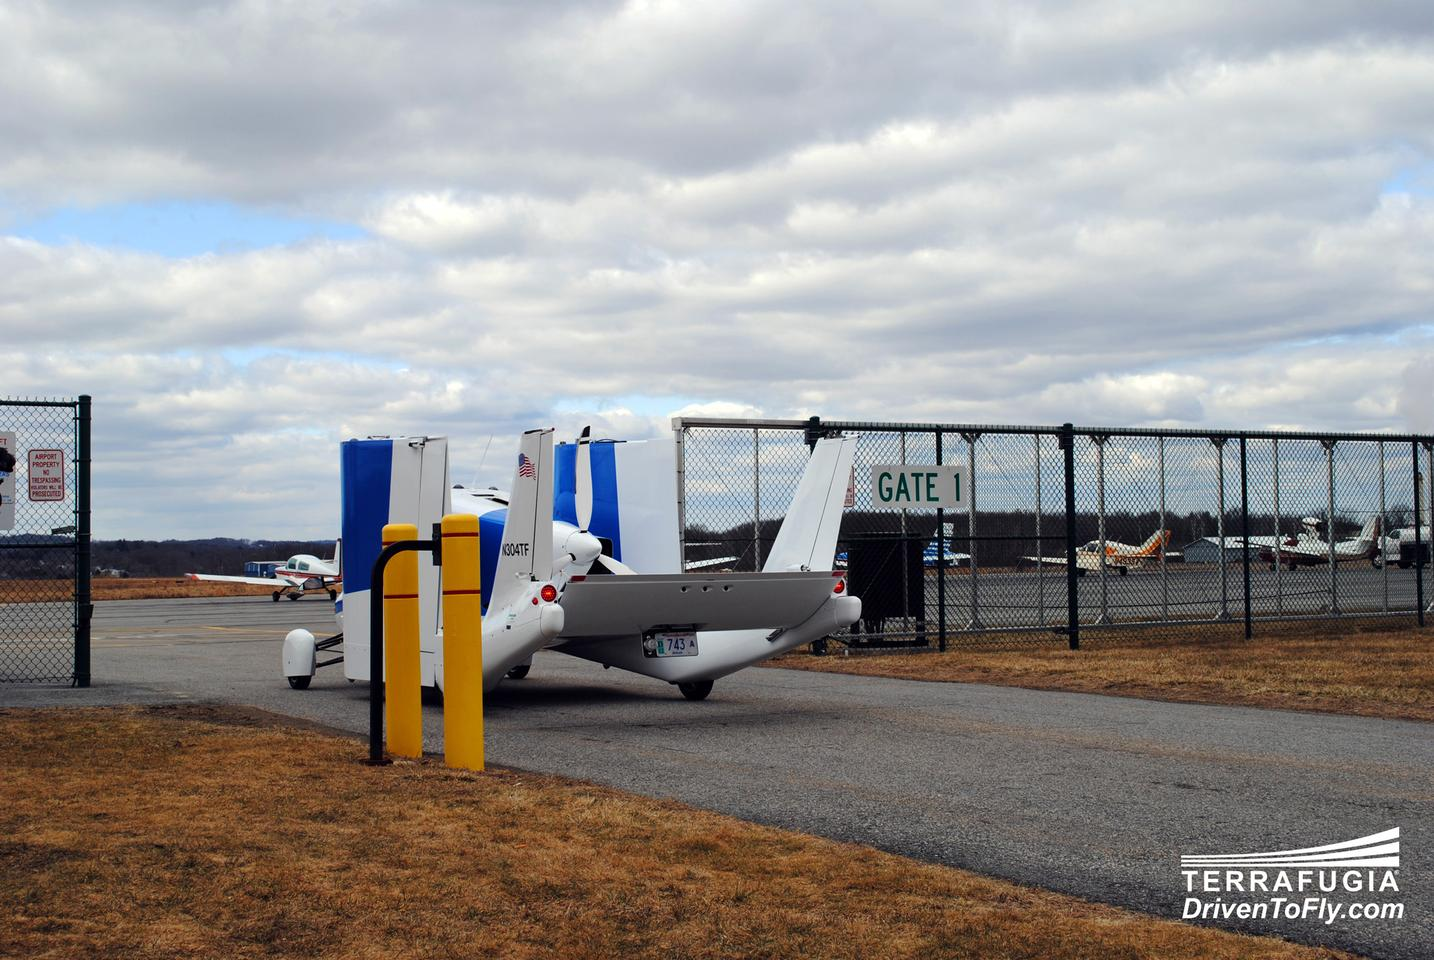 The Terrafugia Transition production prototype, entering the airfield at Plattsburgh International Airport